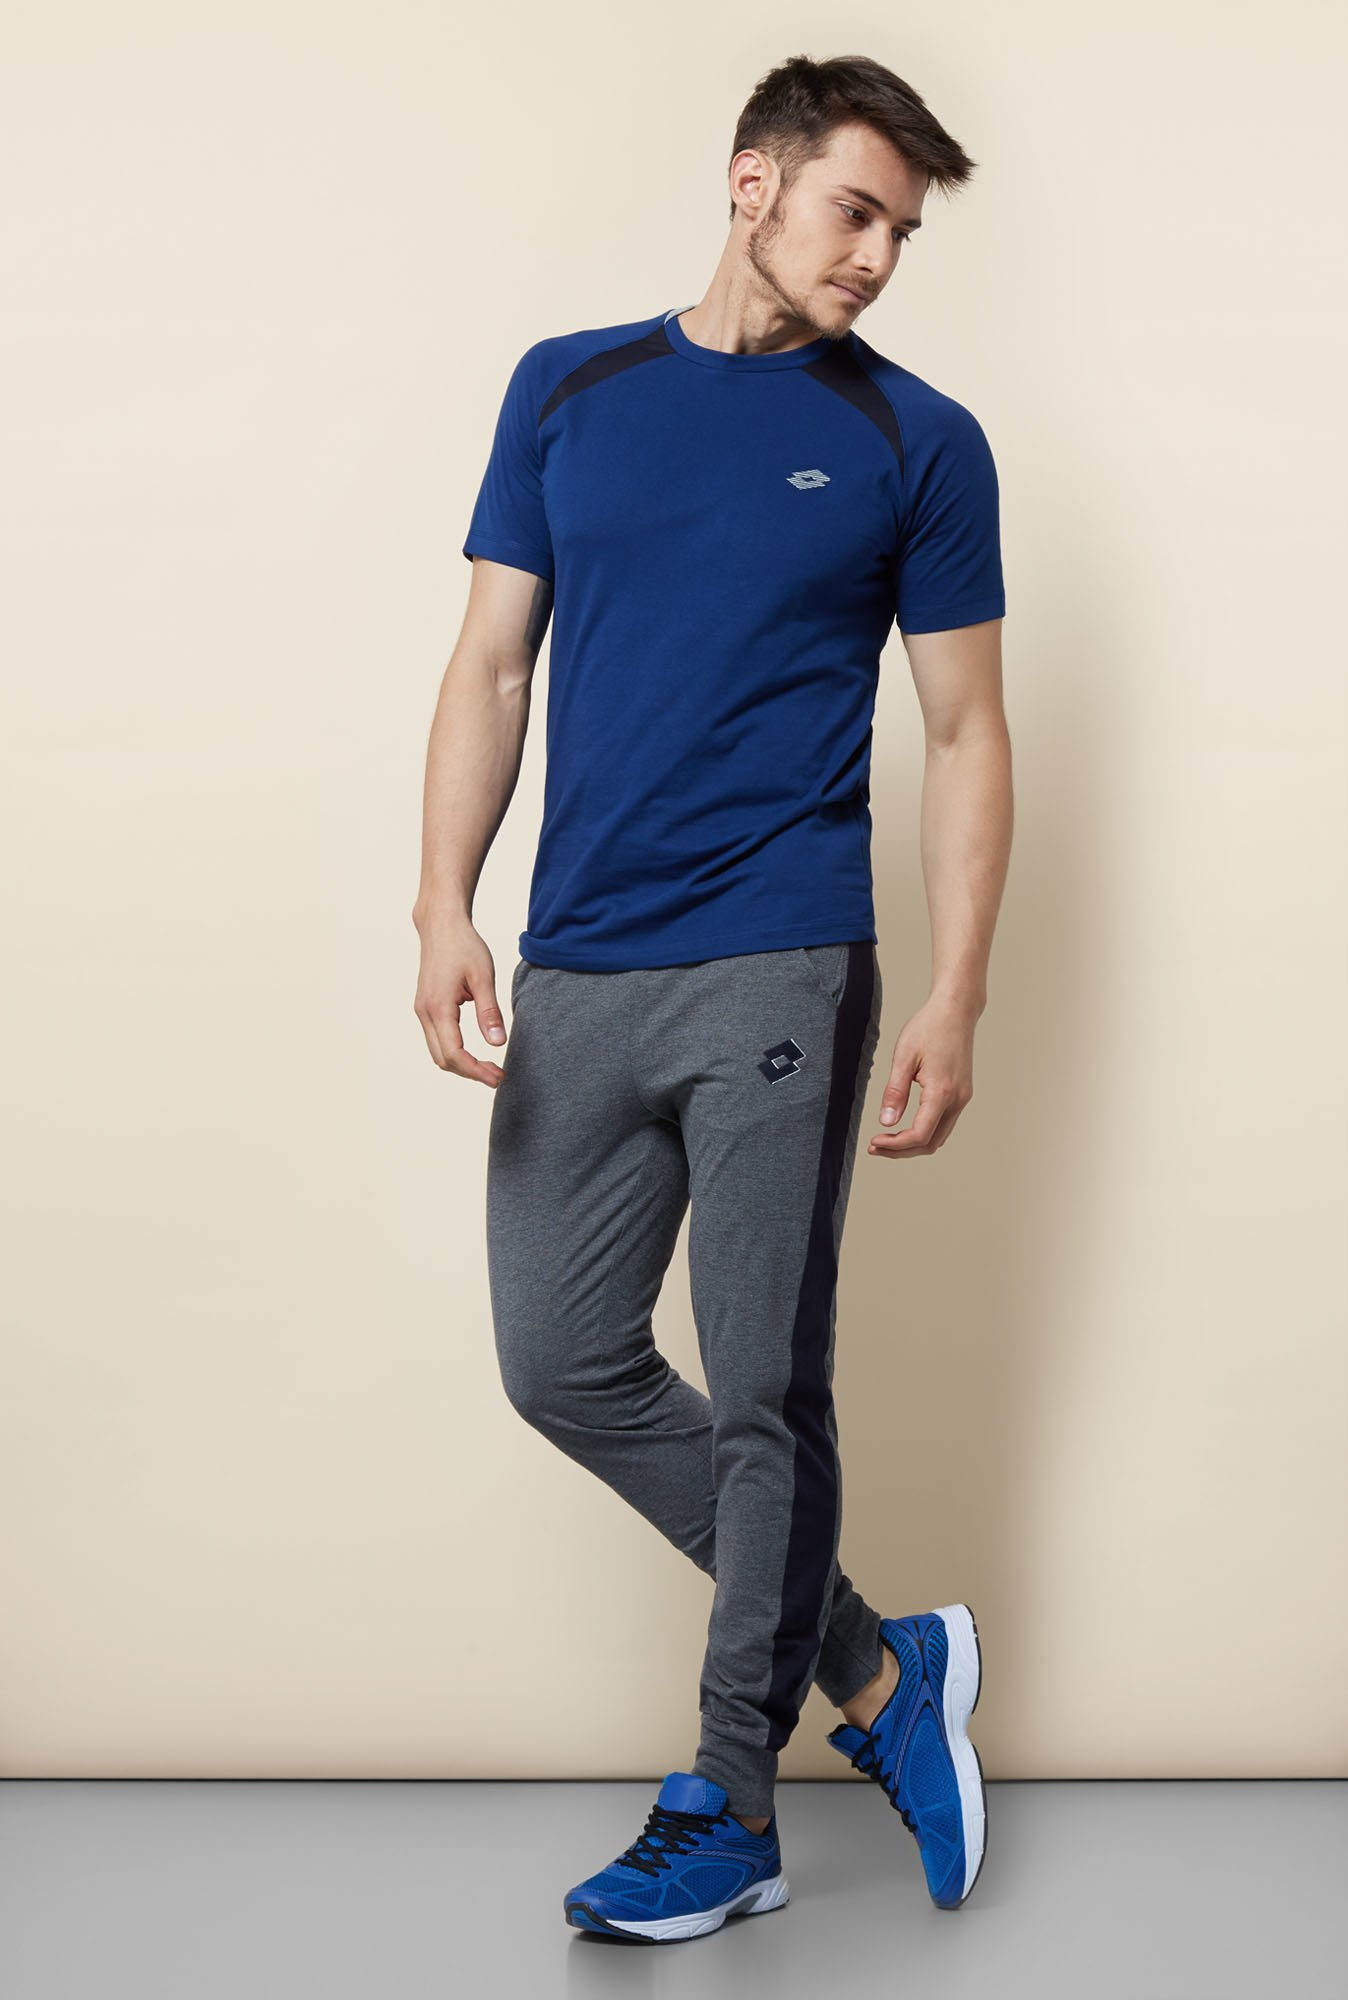 Lotto Dark Blue Solid Sports T Shirt